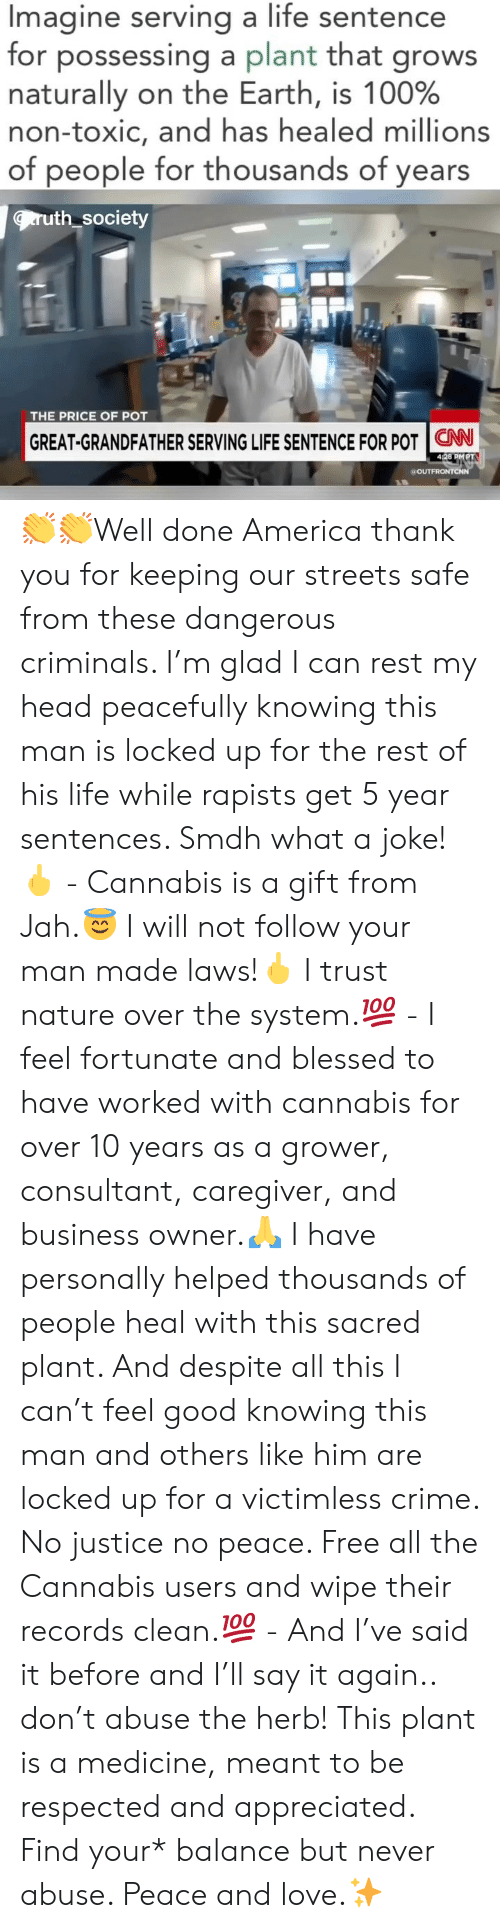 herb: Imagine serving a life sentence  for possessing a plant that grows  naturally on the Earth, is 100%  non-toxic, and has healed millions  of people for thousands of years  ruth society  THE PRICE OF POT  GREAT-GRANDFATHER SERVING LIFE SENTENCE FOR POT | CNN-  428 PMPT  a OUT 👏👏Well done America thank you for keeping our streets safe from these dangerous criminals. I'm glad I can rest my head peacefully knowing this man is locked up for the rest of his life while rapists get 5 year sentences. Smdh what a joke!🖕 - Cannabis is a gift from Jah.😇 I will not follow your man made laws!🖕 I trust nature over the system.💯 - I feel fortunate and blessed to have worked with cannabis for over 10 years as a grower, consultant, caregiver, and business owner.🙏 I have personally helped thousands of people heal with this sacred plant. And despite all this I can't feel good knowing this man and others like him are locked up for a victimless crime. No justice no peace. Free all the Cannabis users and wipe their records clean.💯 - And I've said it before and I'll say it again.. don't abuse the herb! This plant is a medicine, meant to be respected and appreciated. Find your* balance but never abuse. Peace and love.✨